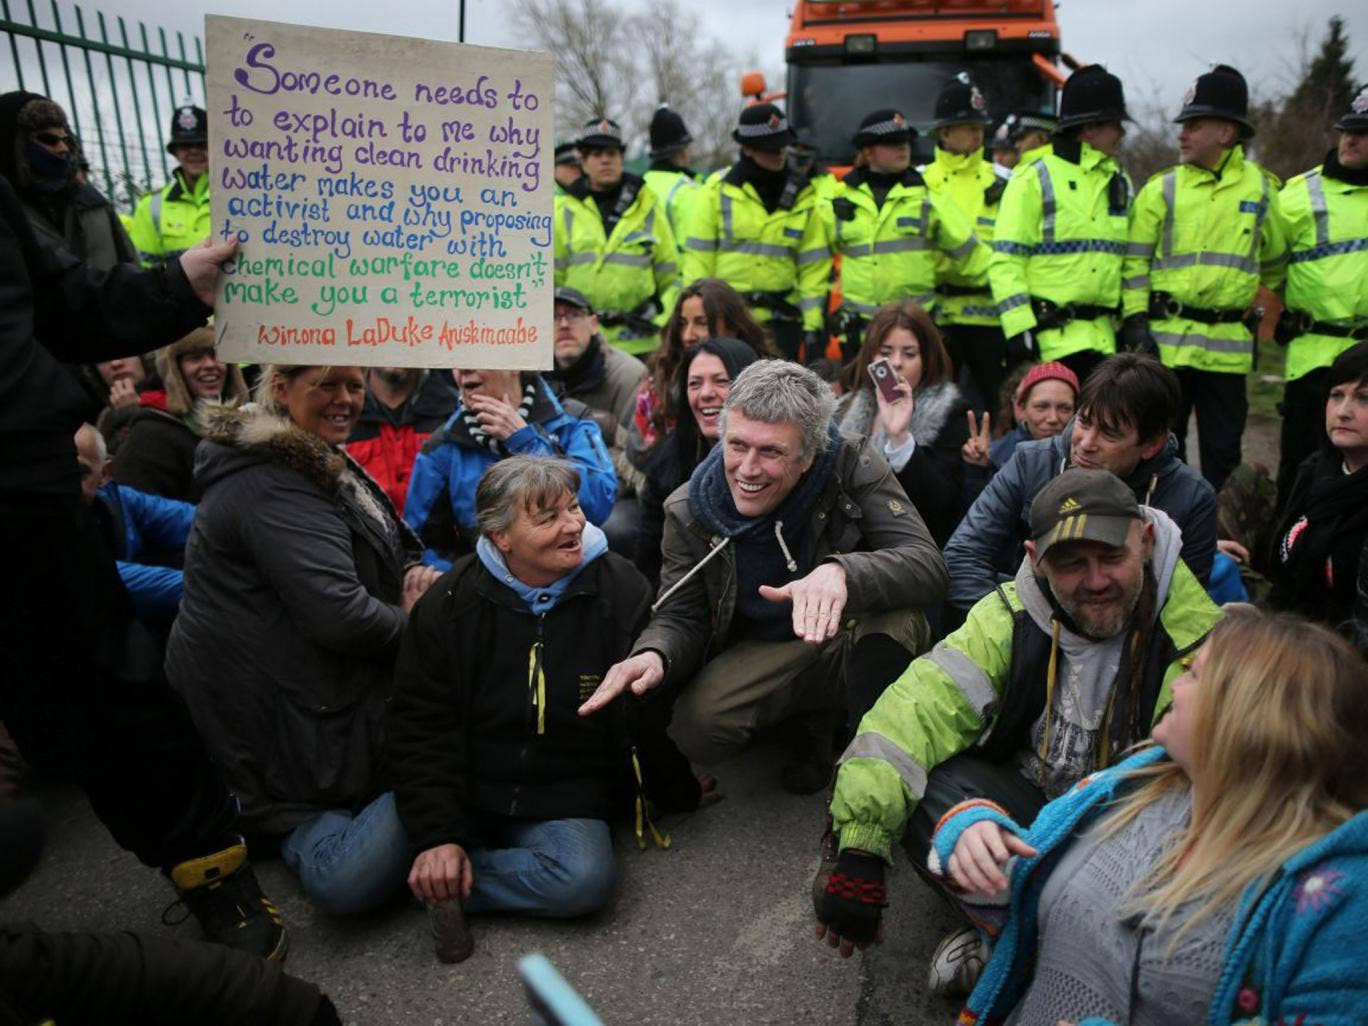 Happy Mondays star Bez joins protesters blocking lorries trying to enter the Igas fracking exploration site at Barton Moss in Salford yesterday.  Bez, real name Mark Berry, intends to stand for Parliament next year for the Salford seat.